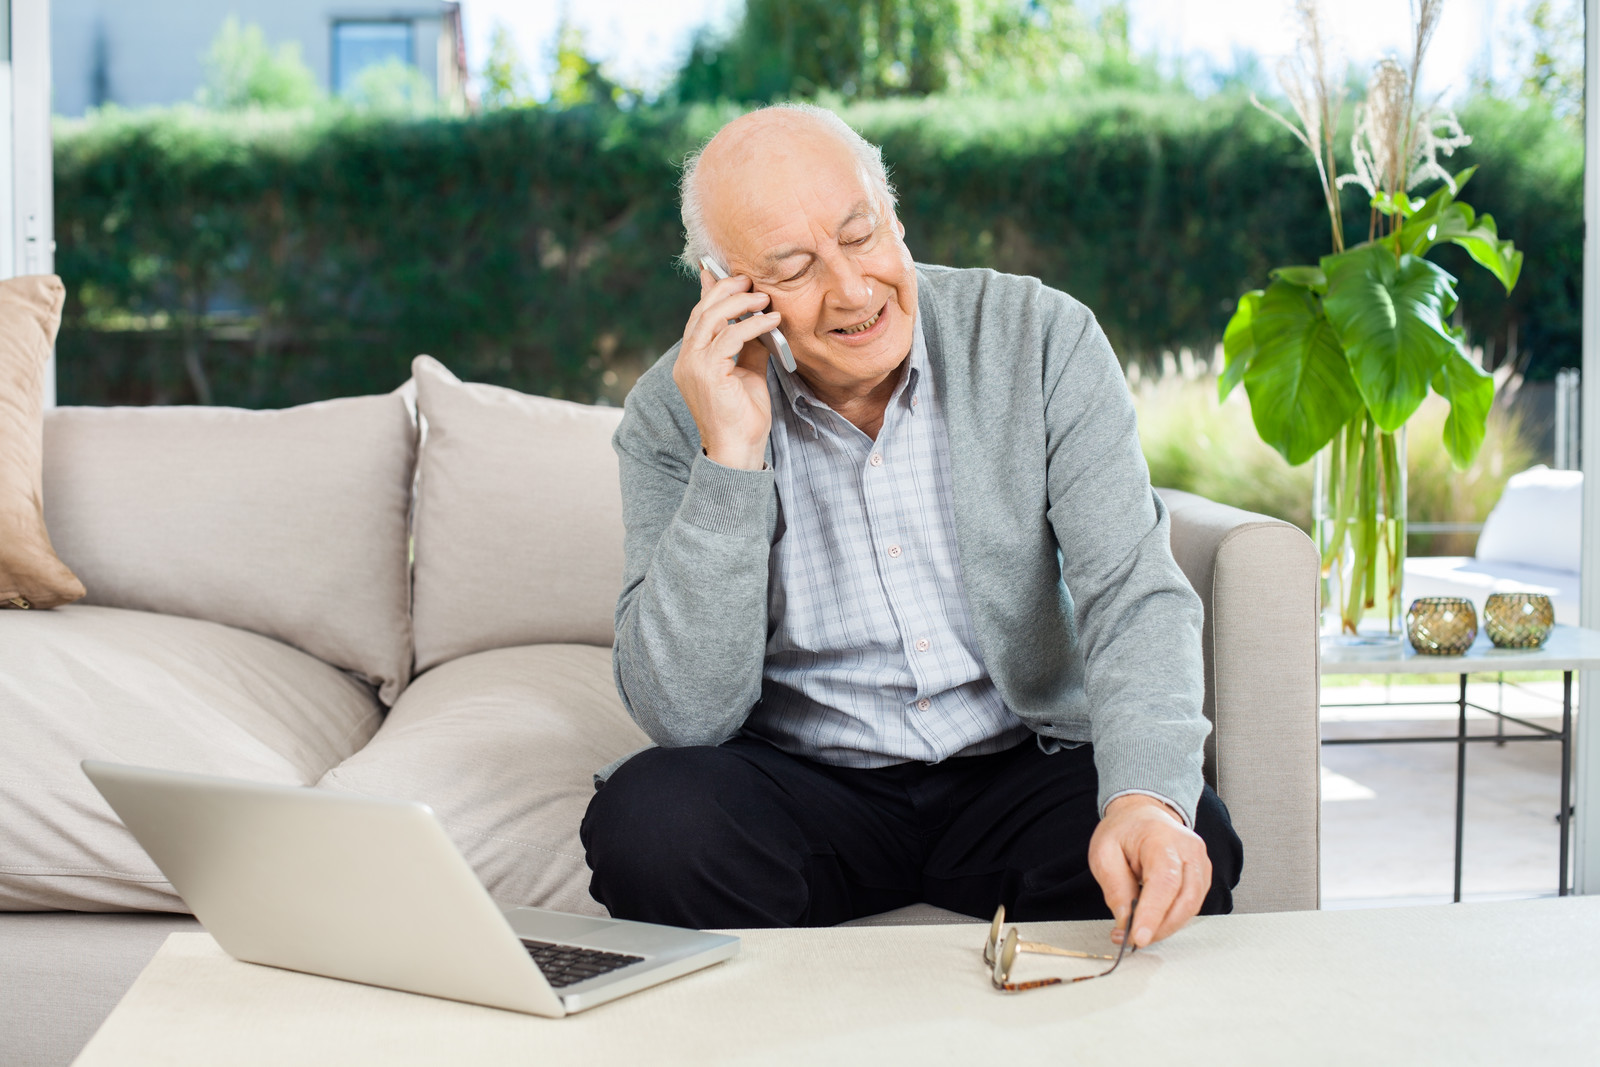 Senior man sitting on couch on an outdoor patio answering his smart phone in front of his lap top